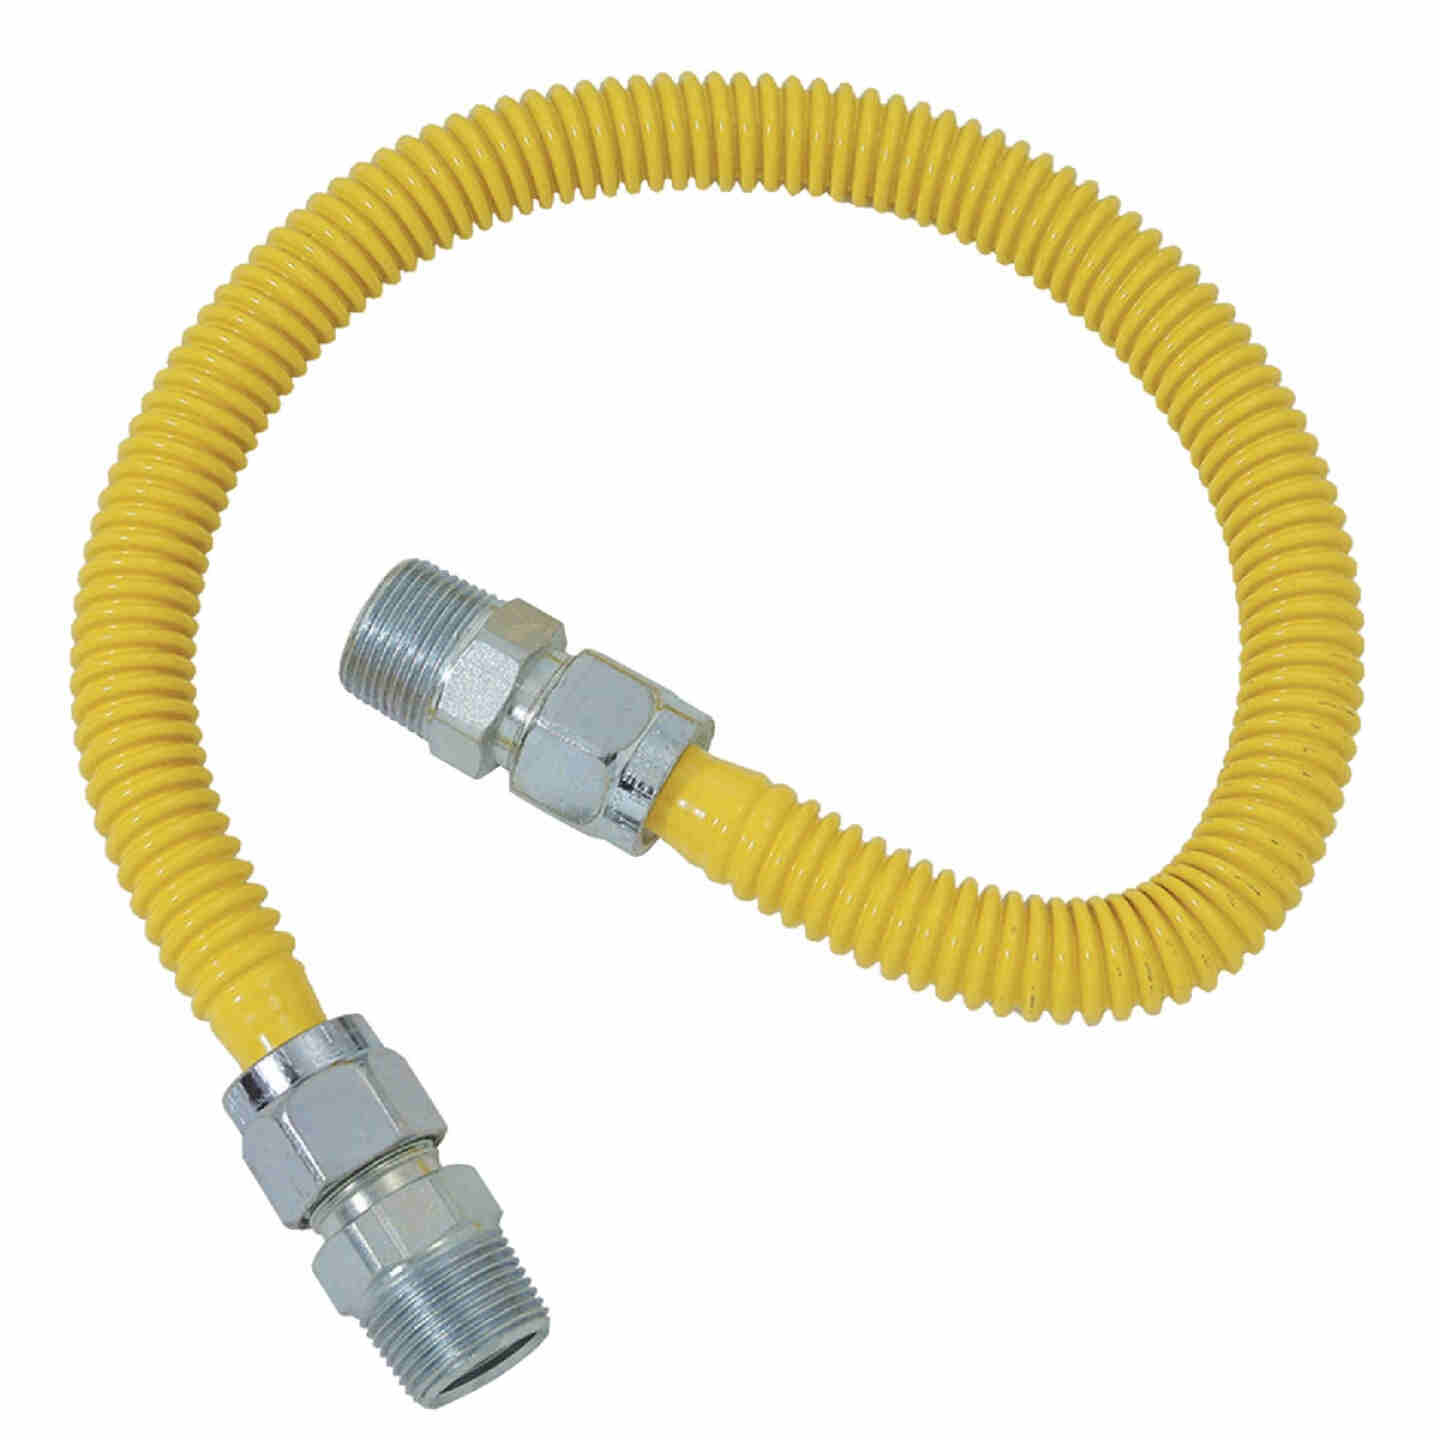 Dormont 5/8 In. OD x 48 In. Coated Stainless Steel Gas Connector, 3/4 In. MIP x 1/2 In. MIP (Tapped 3/8 In. FIP) Image 1